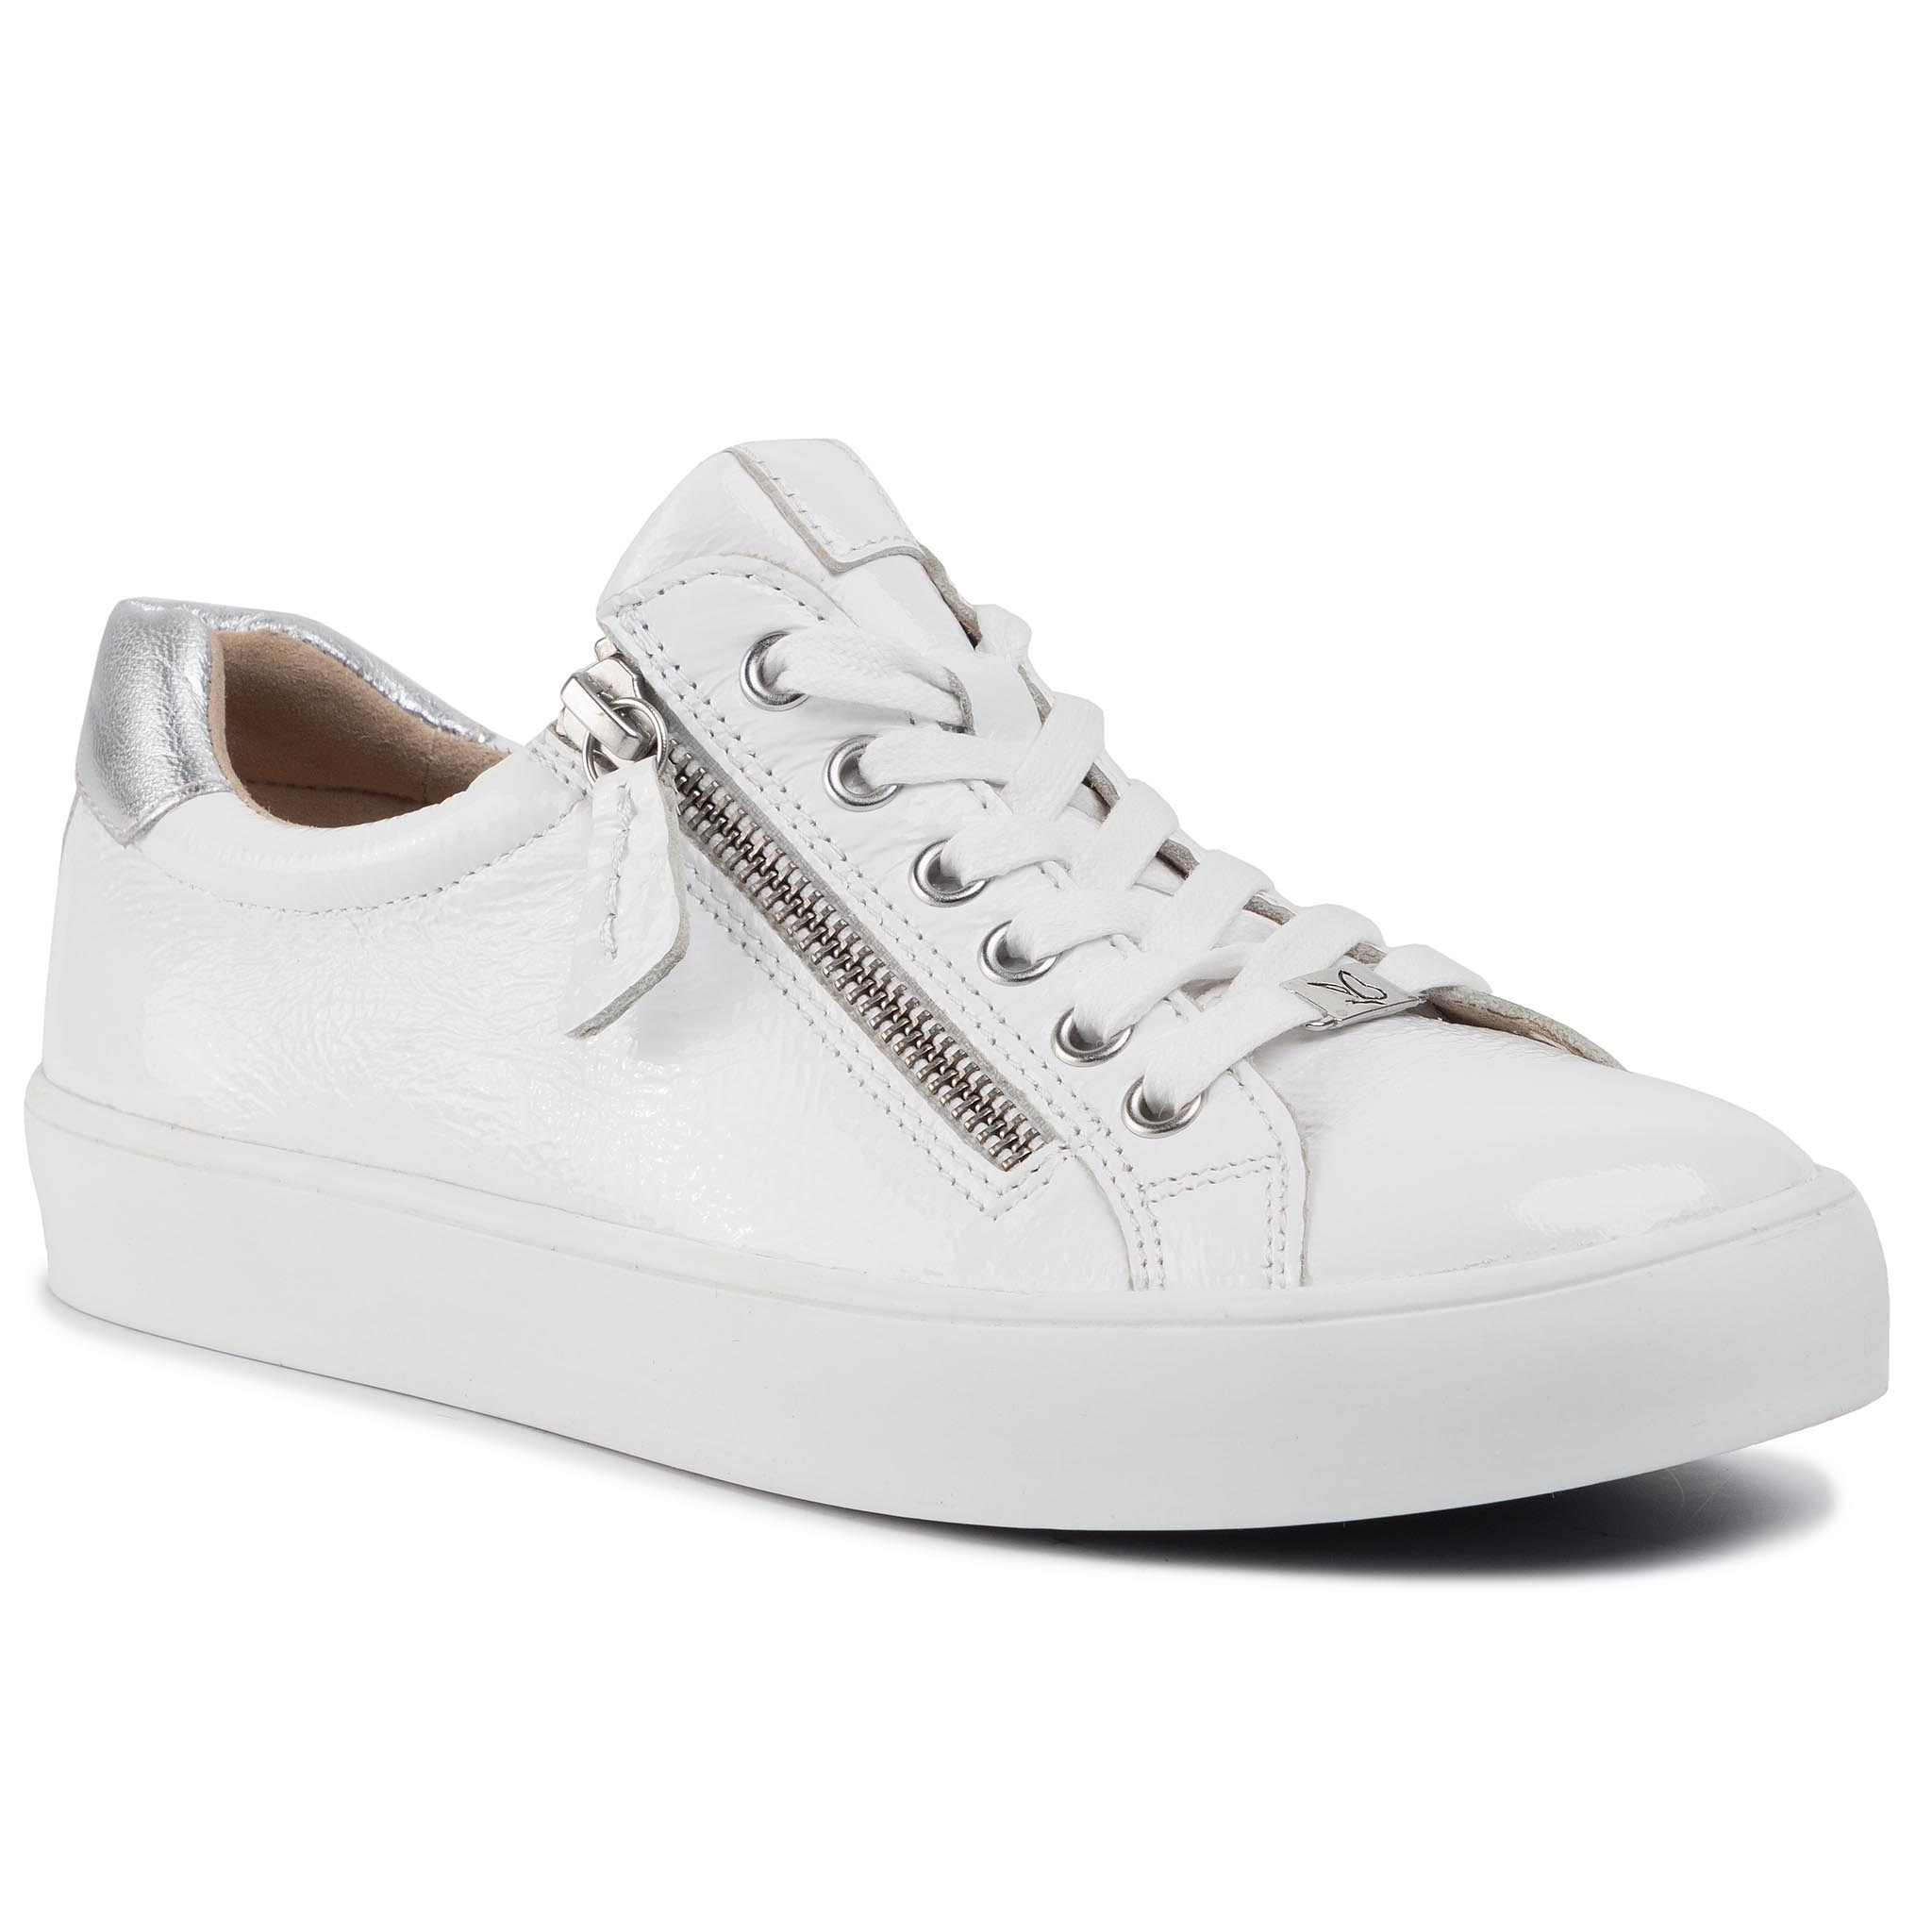 Sneakers CAPRICE - 9-23656-24 White/Silver 191